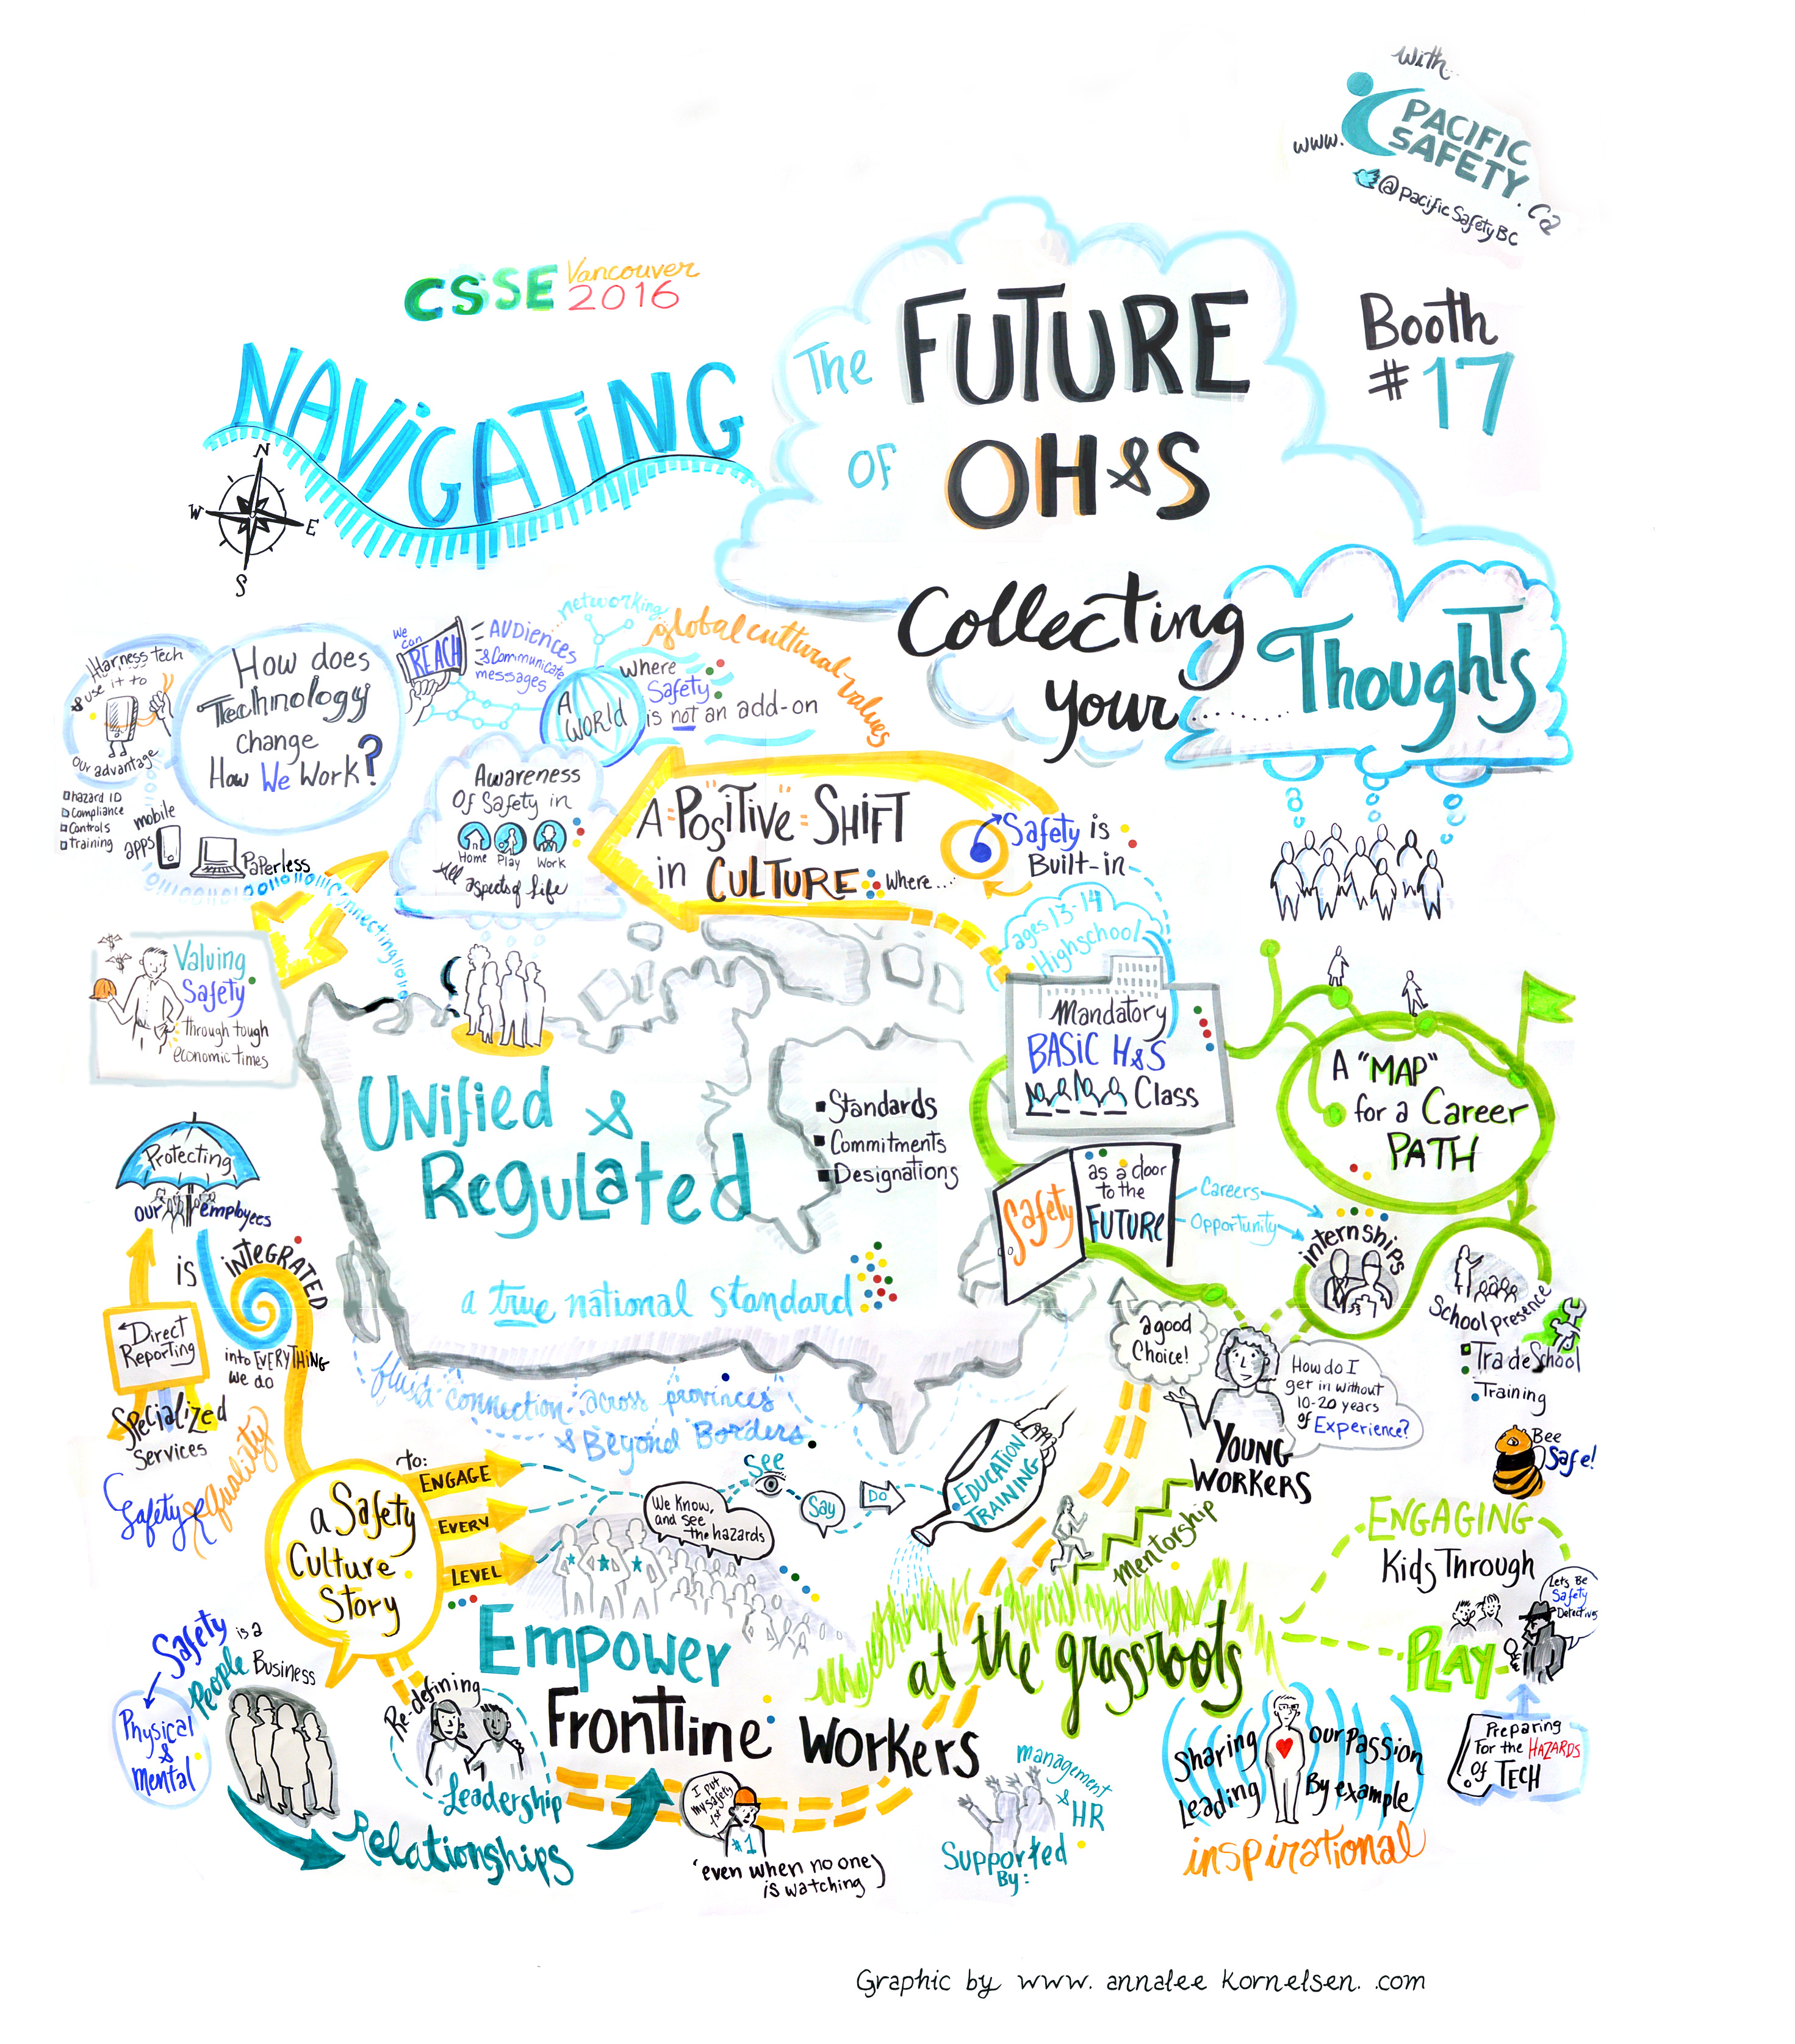 Navigating the Future of OHS